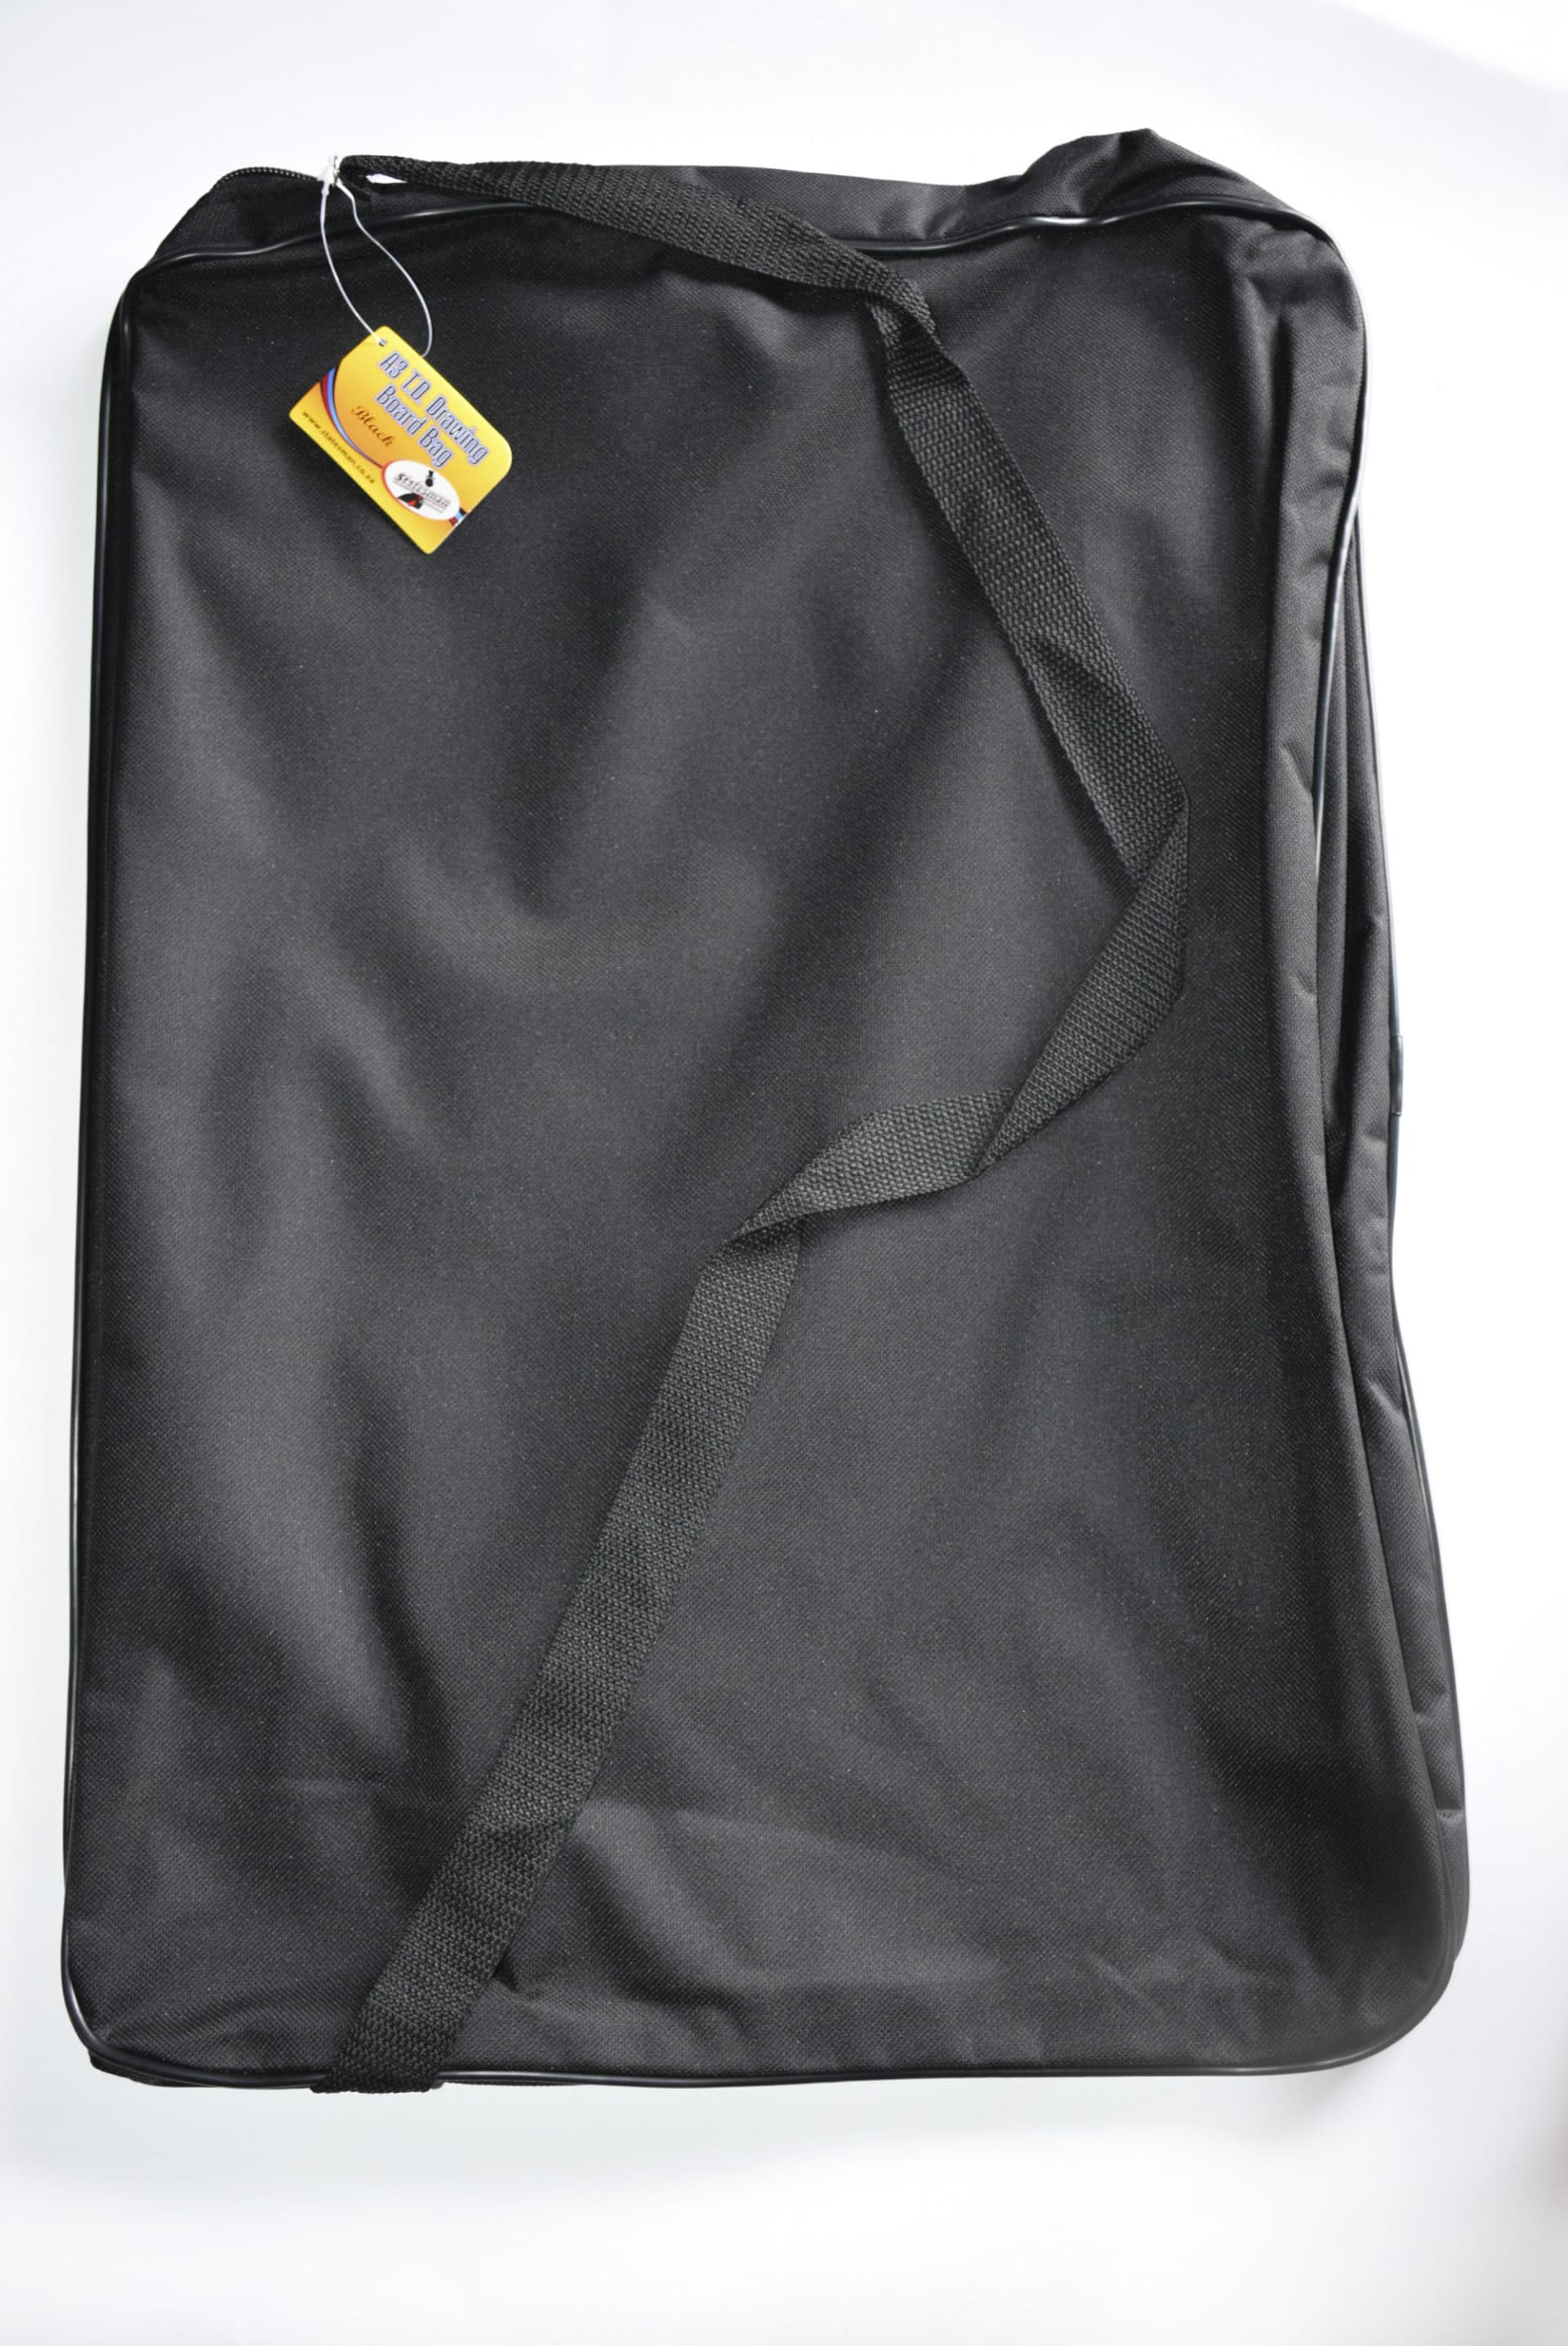 A3 Drawing Bag Black High Quality 1